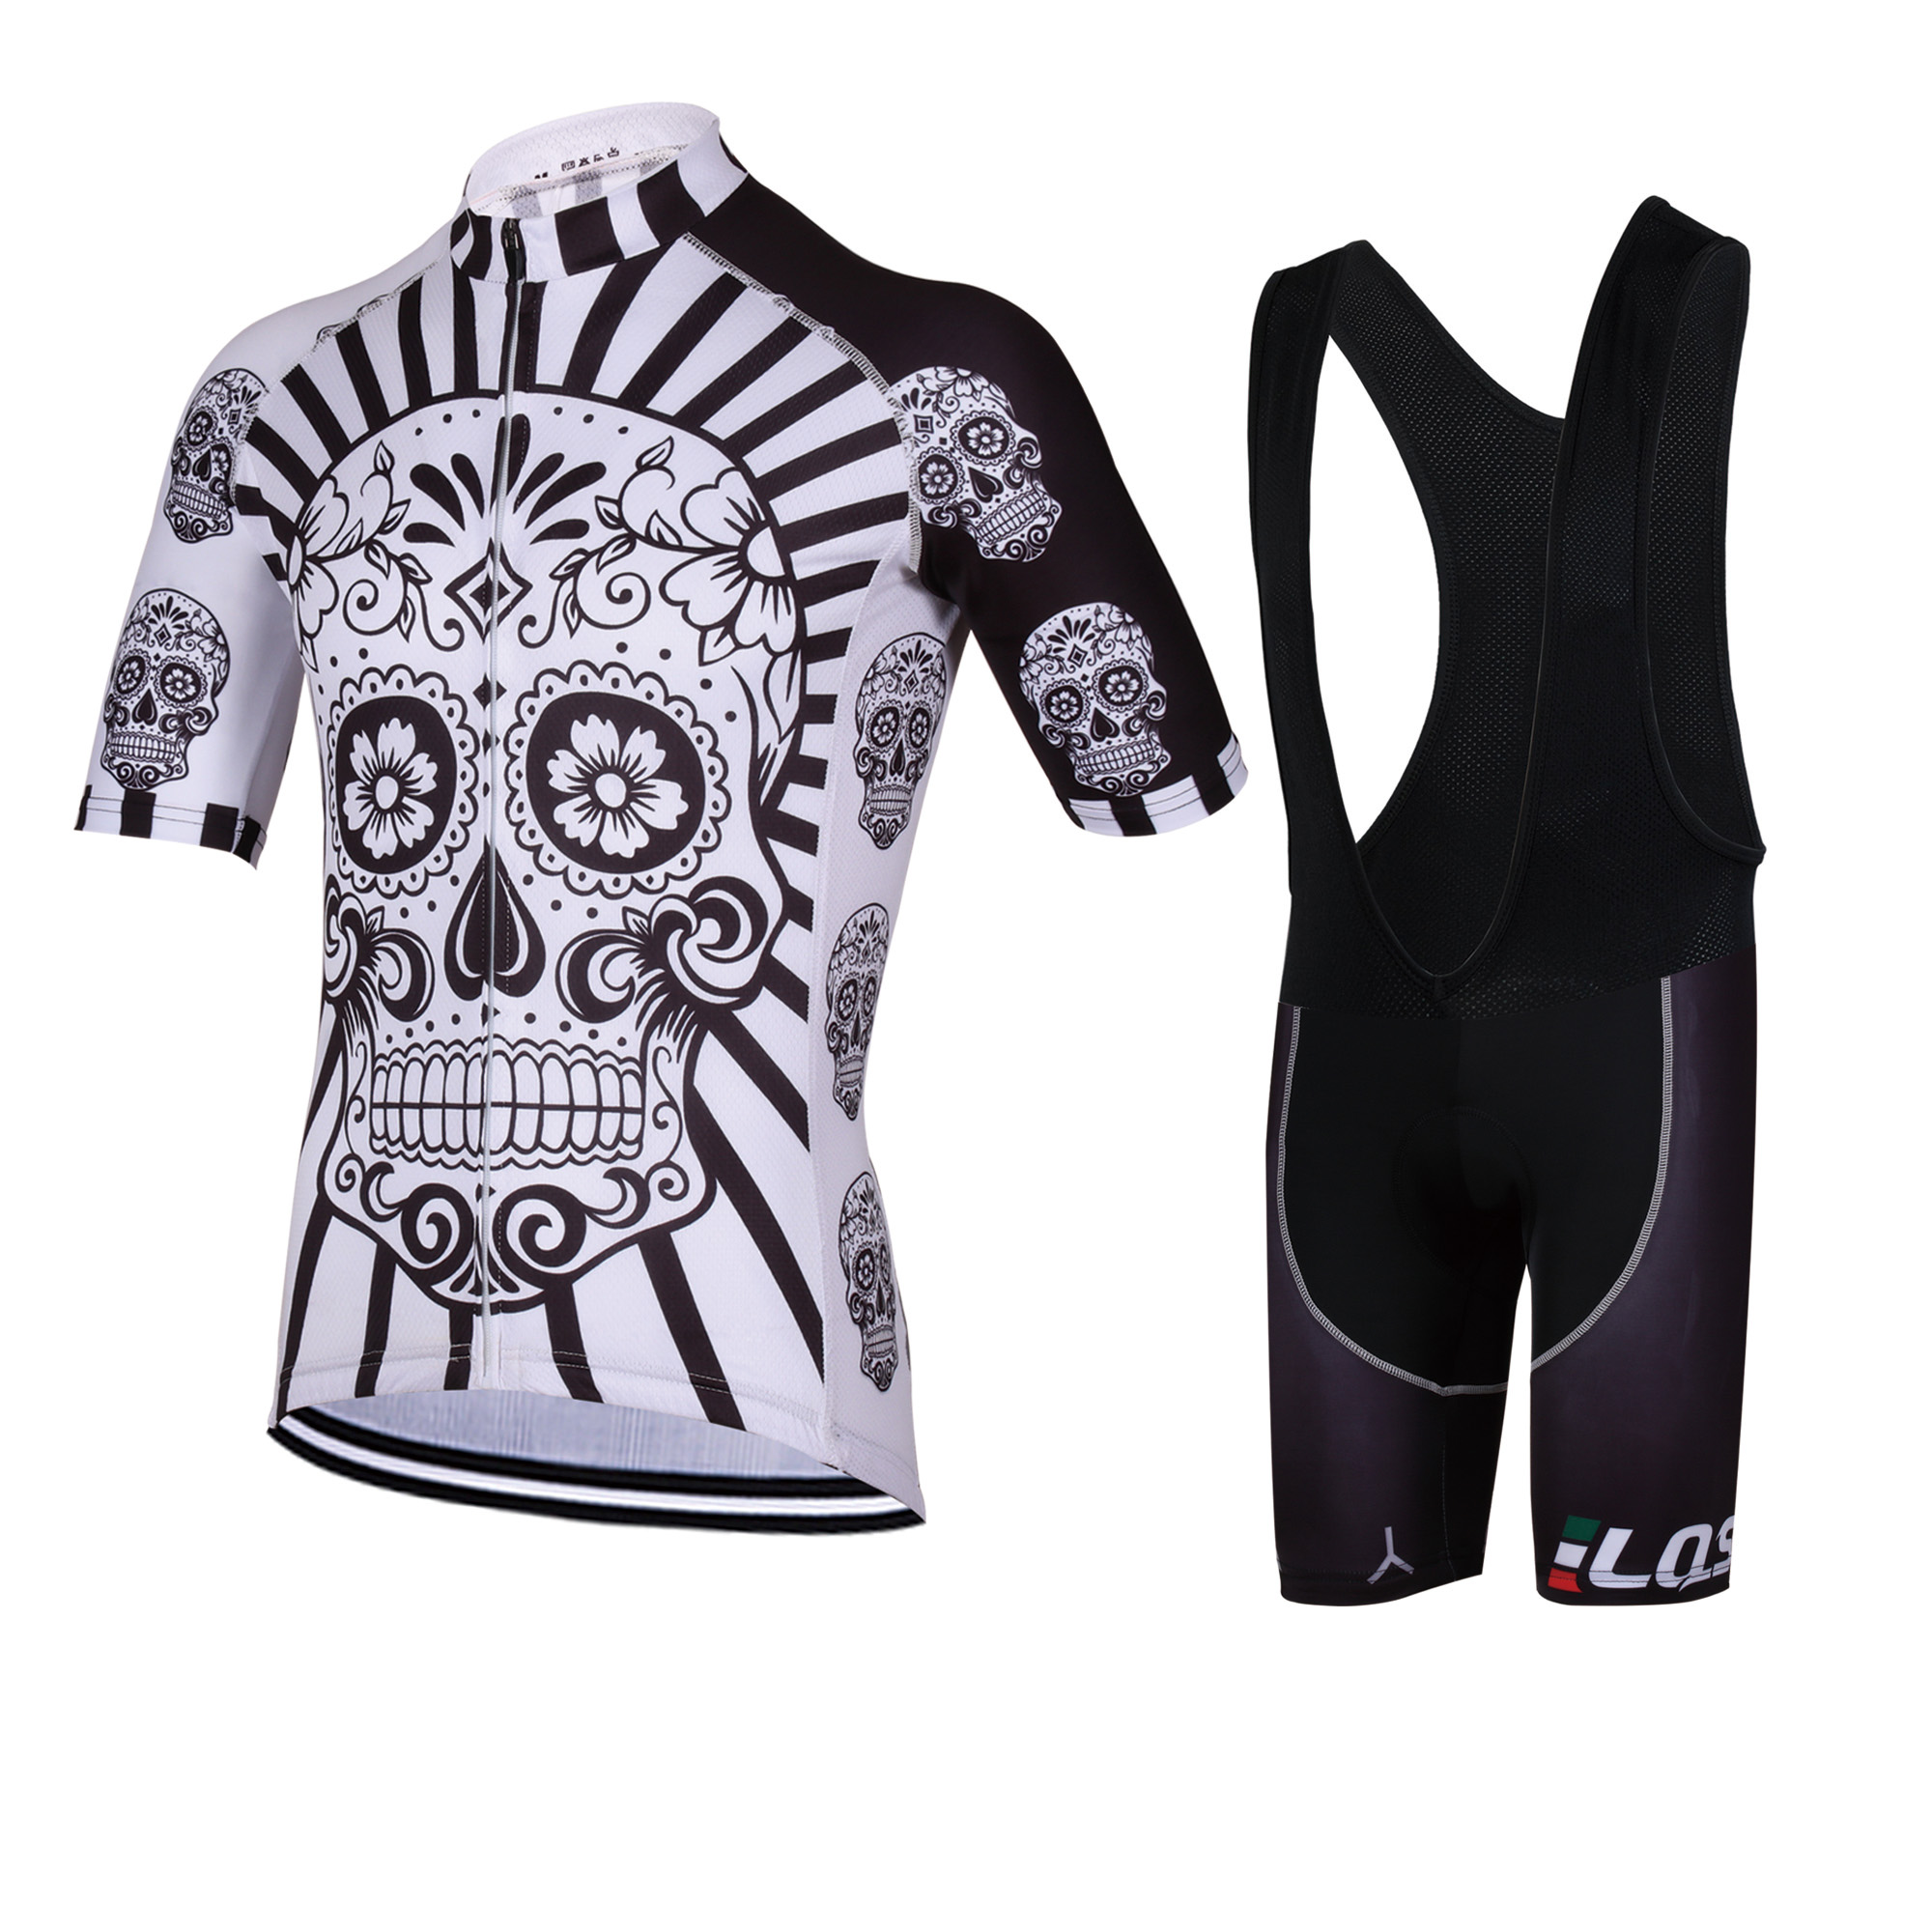 LQS New Short-sleeved Cycling Suit